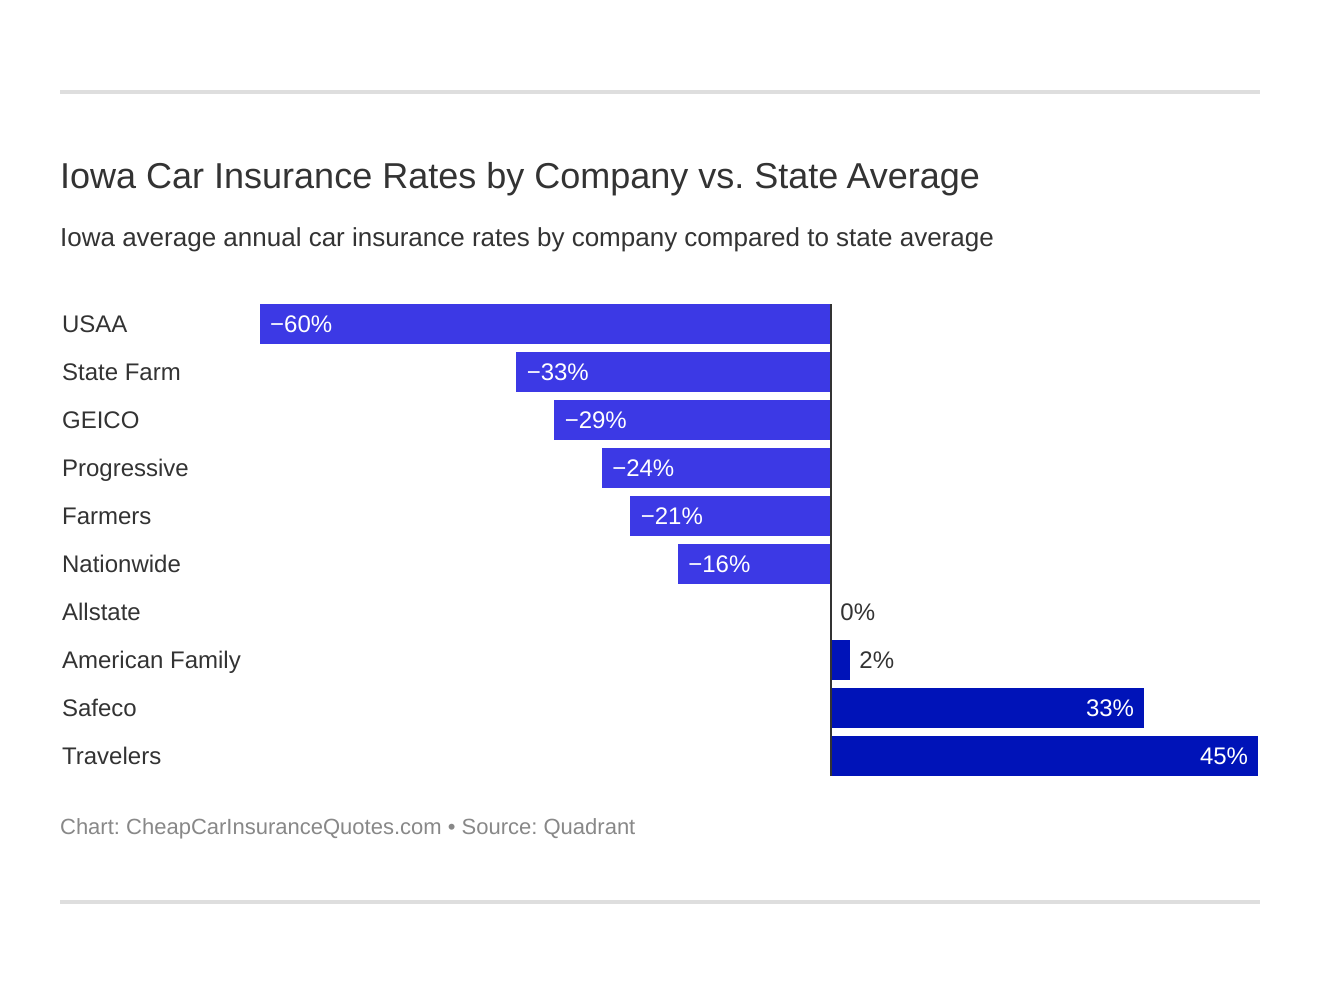 Iowa Car Insurance Rates by Company vs. State Average